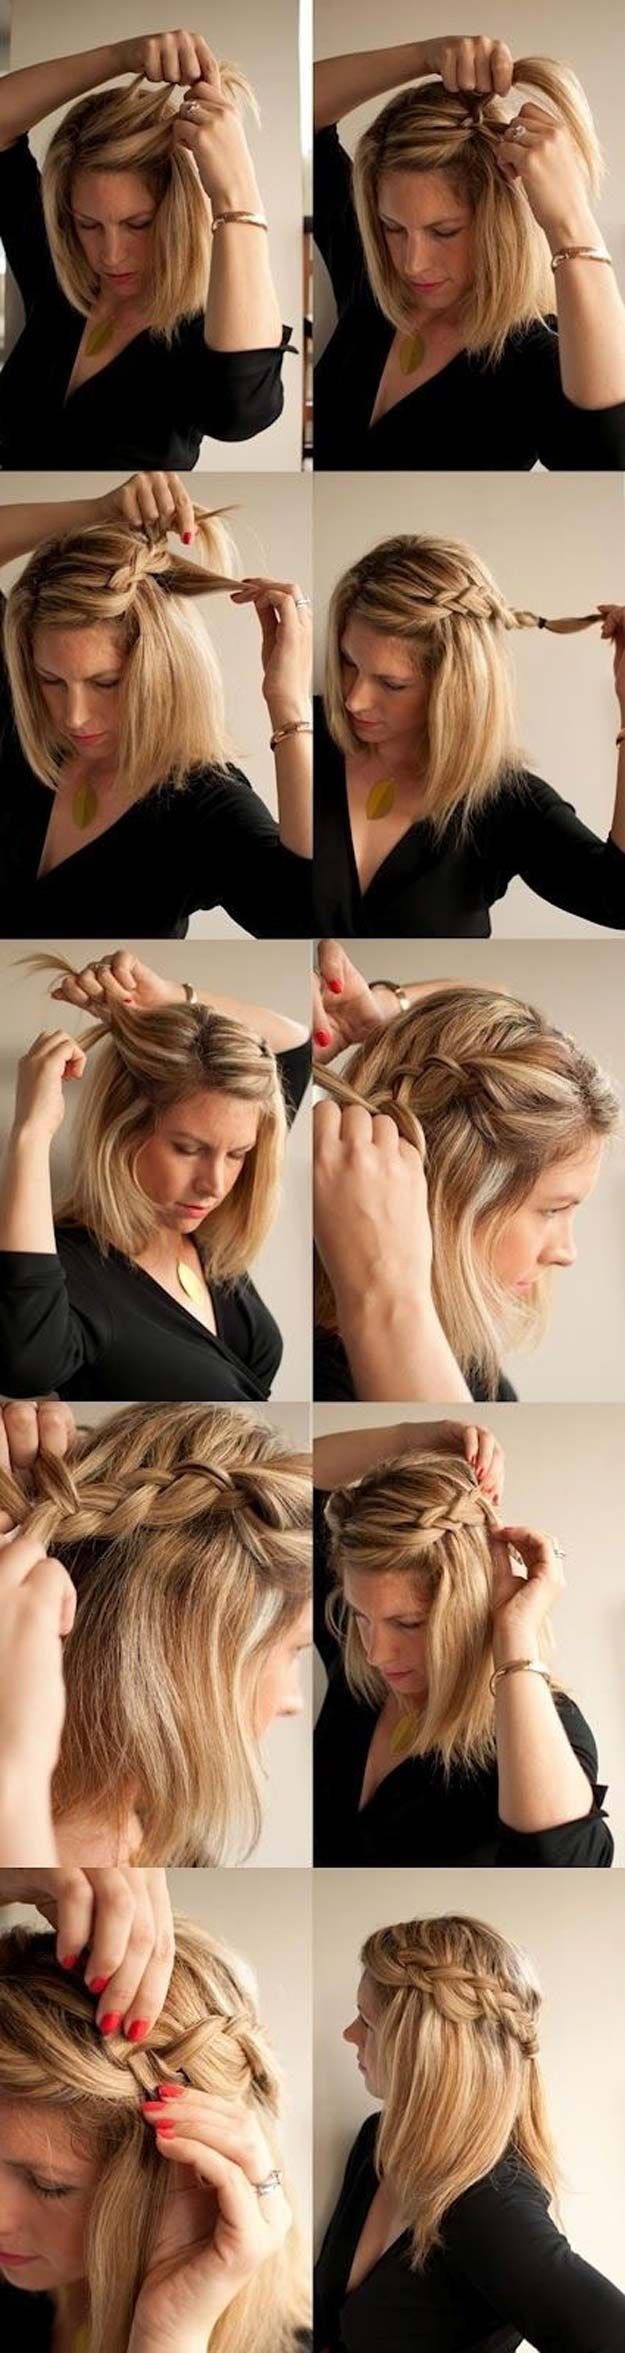 The 48 best medium length hairstyles to steal for yourself the 48 best medium length hairstyles to steal for yourself solutioingenieria Choice Image